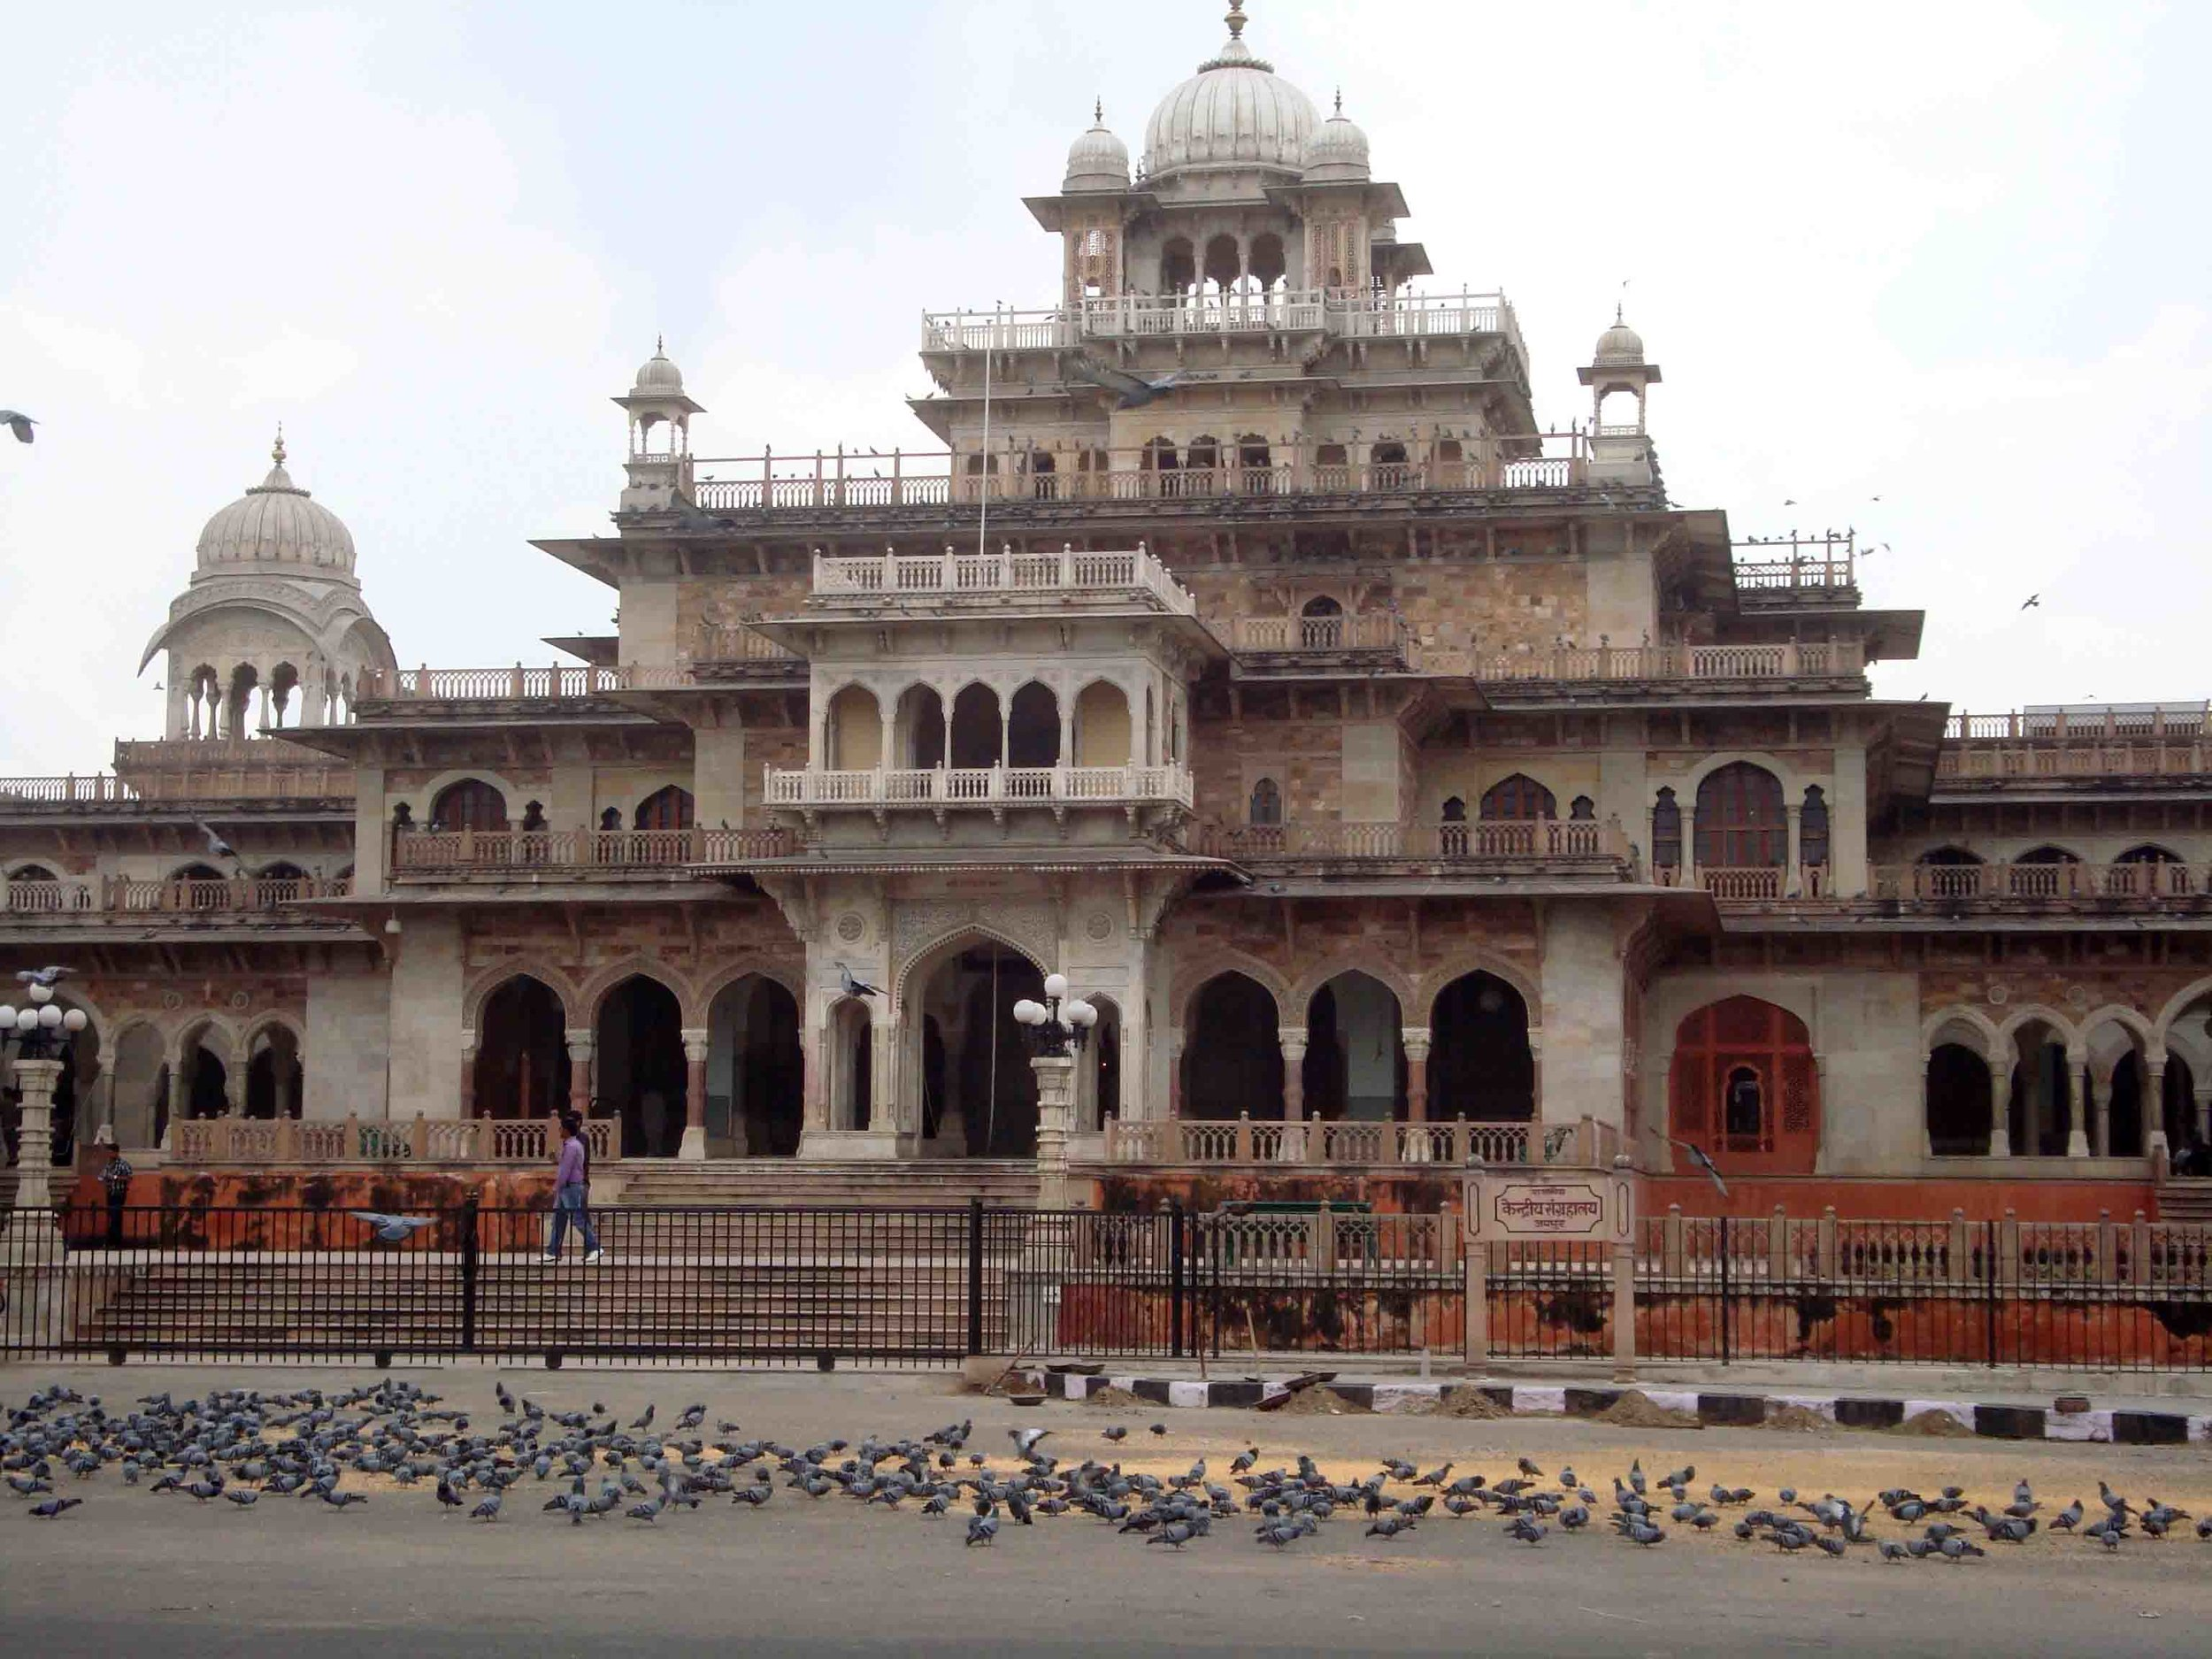 http://www.indiantravellers.co.in/travel/asia/india/rajasthan/jaipur/museums-in-jaipur